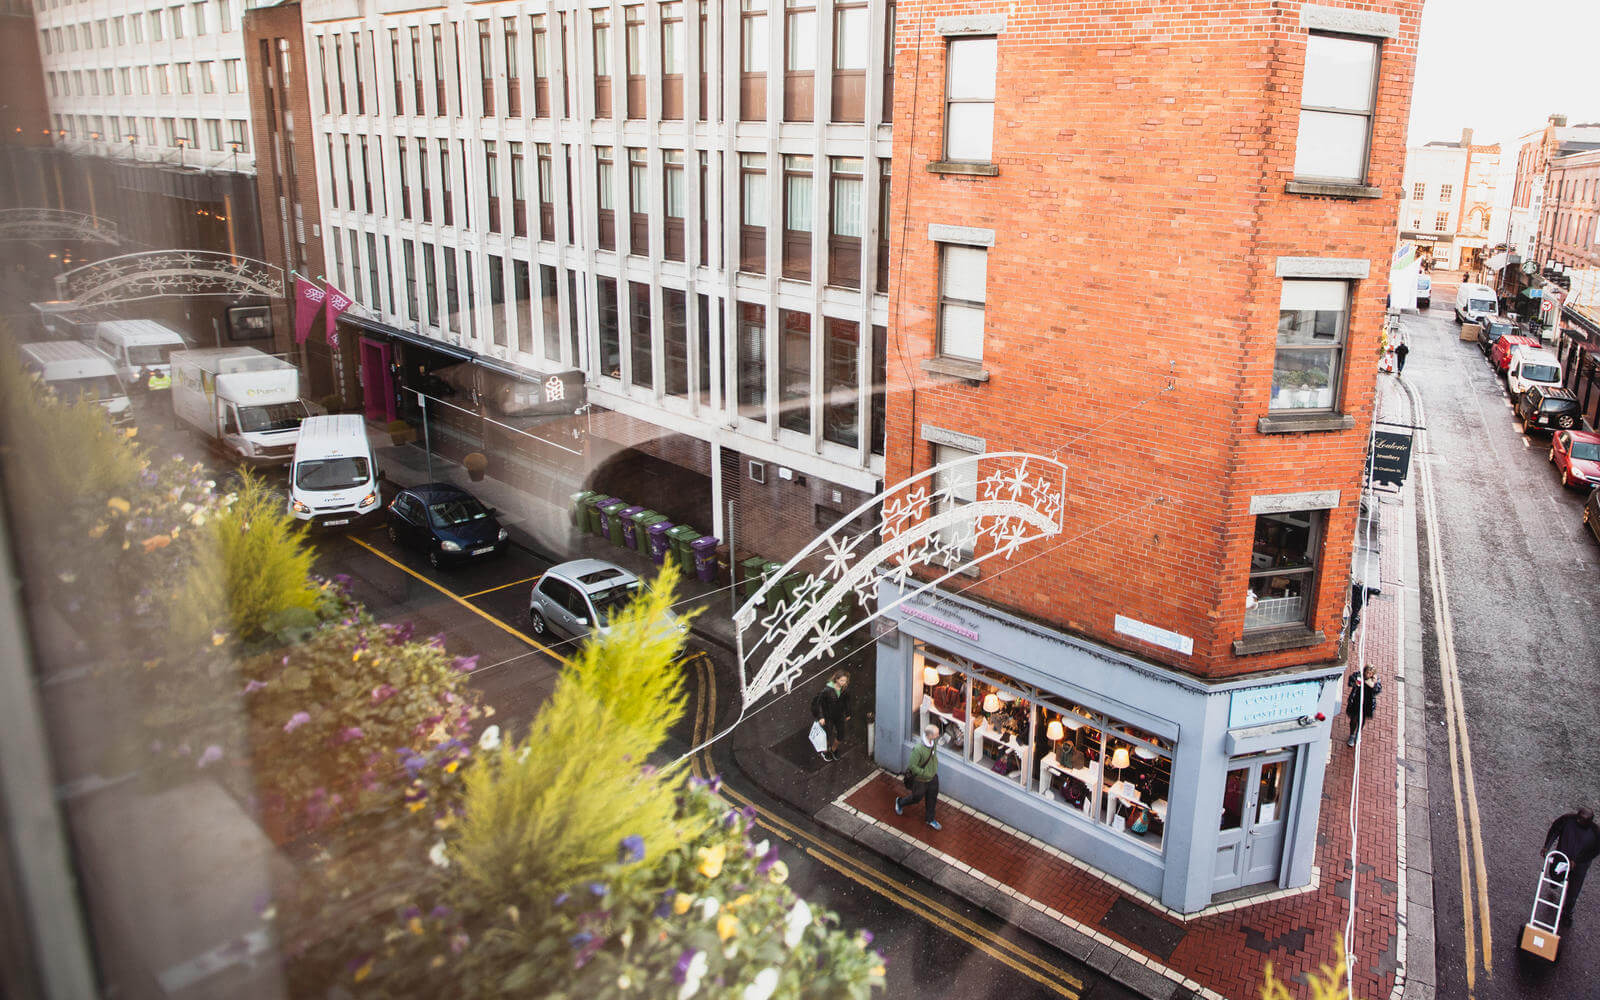 Staying at Clarendon Suites, means you are right in the middle of Dublin city, at the edge of Temple Bar, a stroll away from St Stephen's Green Park and Grafton Street.